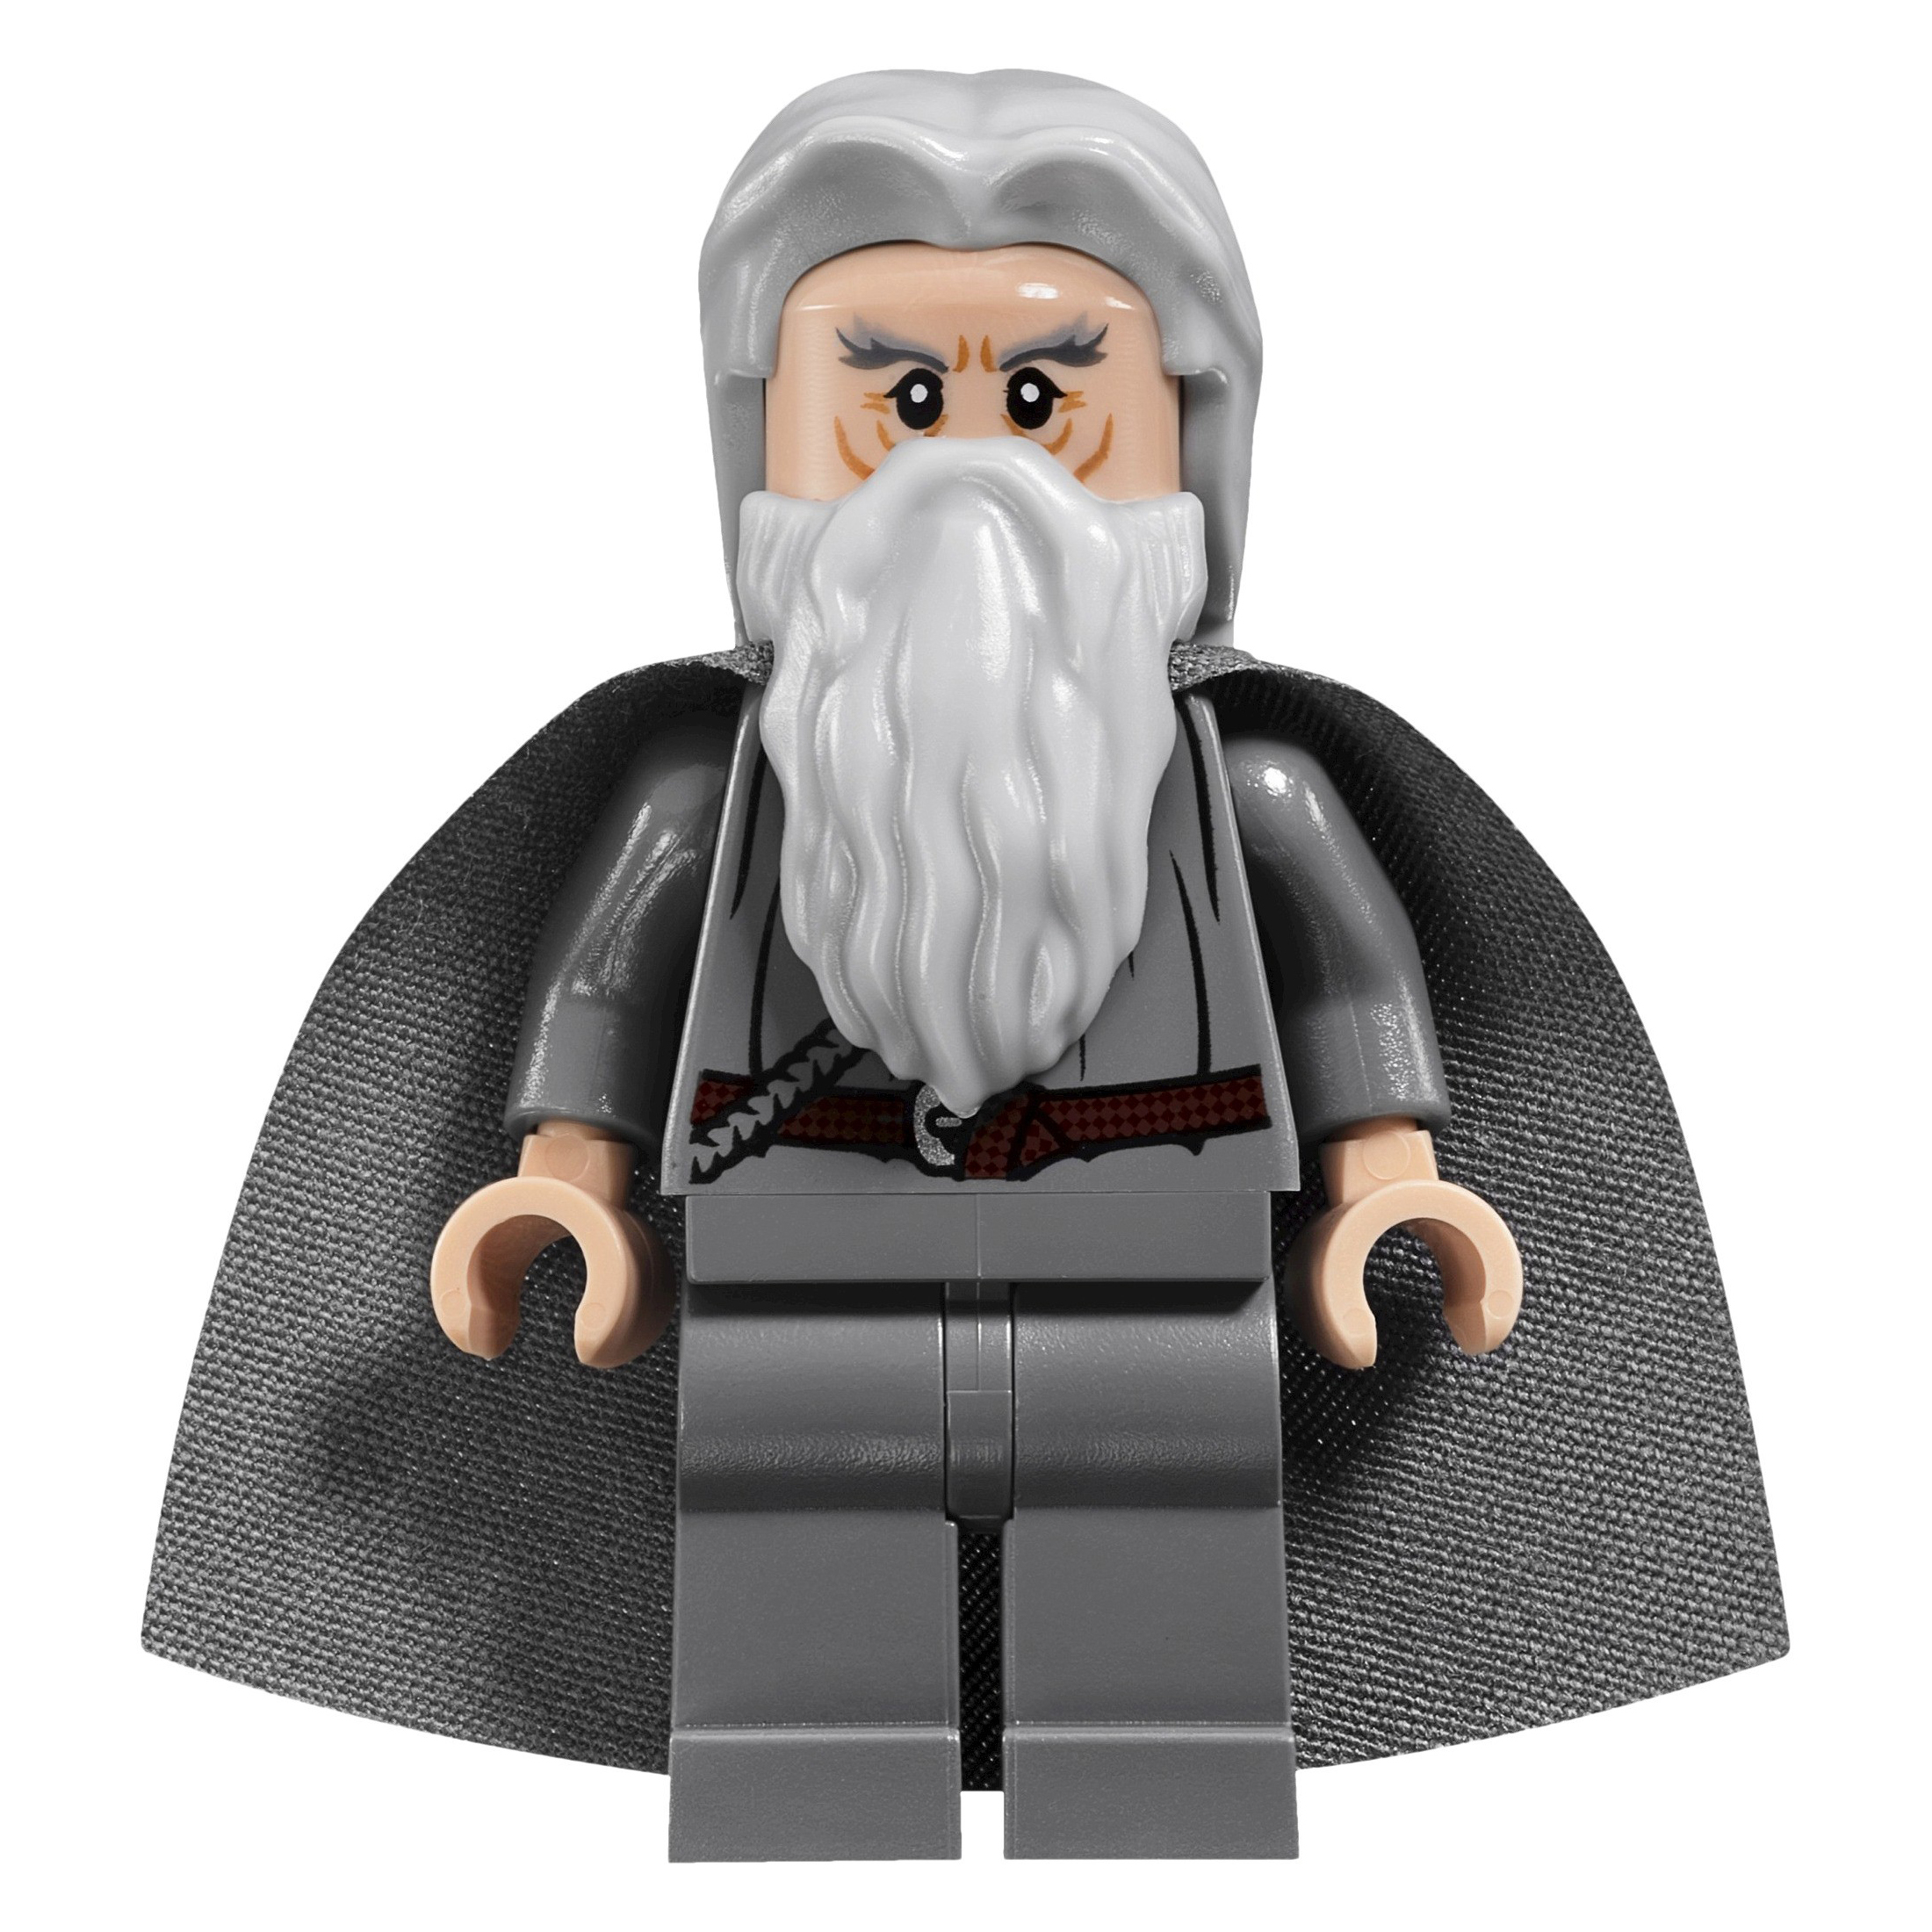 q_79014_gandalf_the_gray.jpg